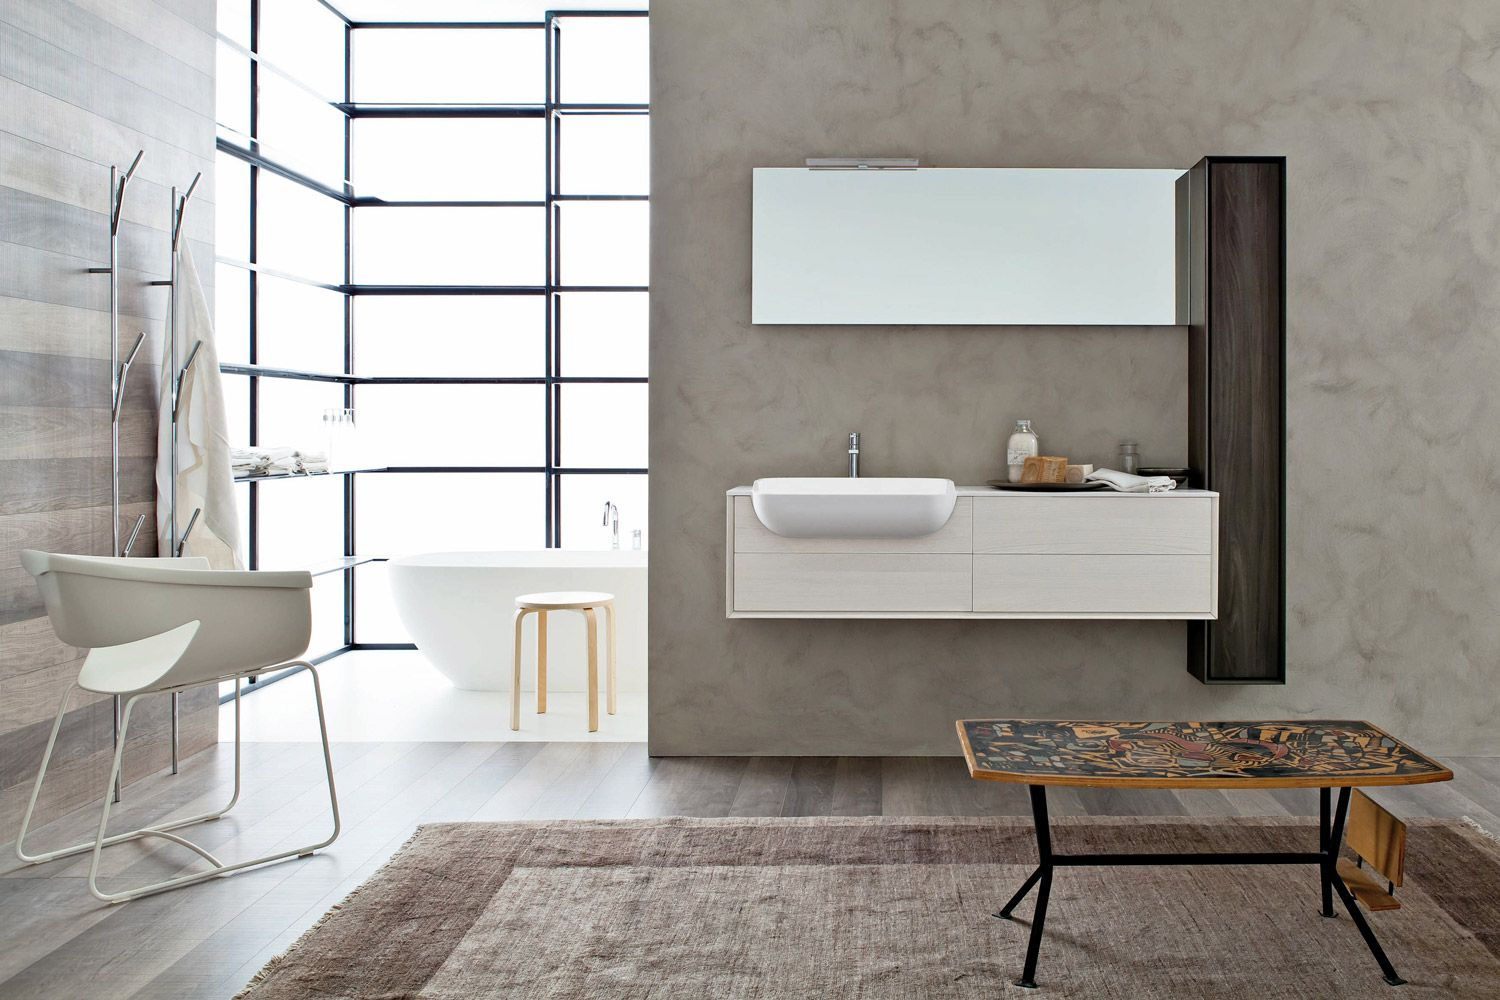 The Teknorit wash-basin can be matched with smaller depth cabinets ...